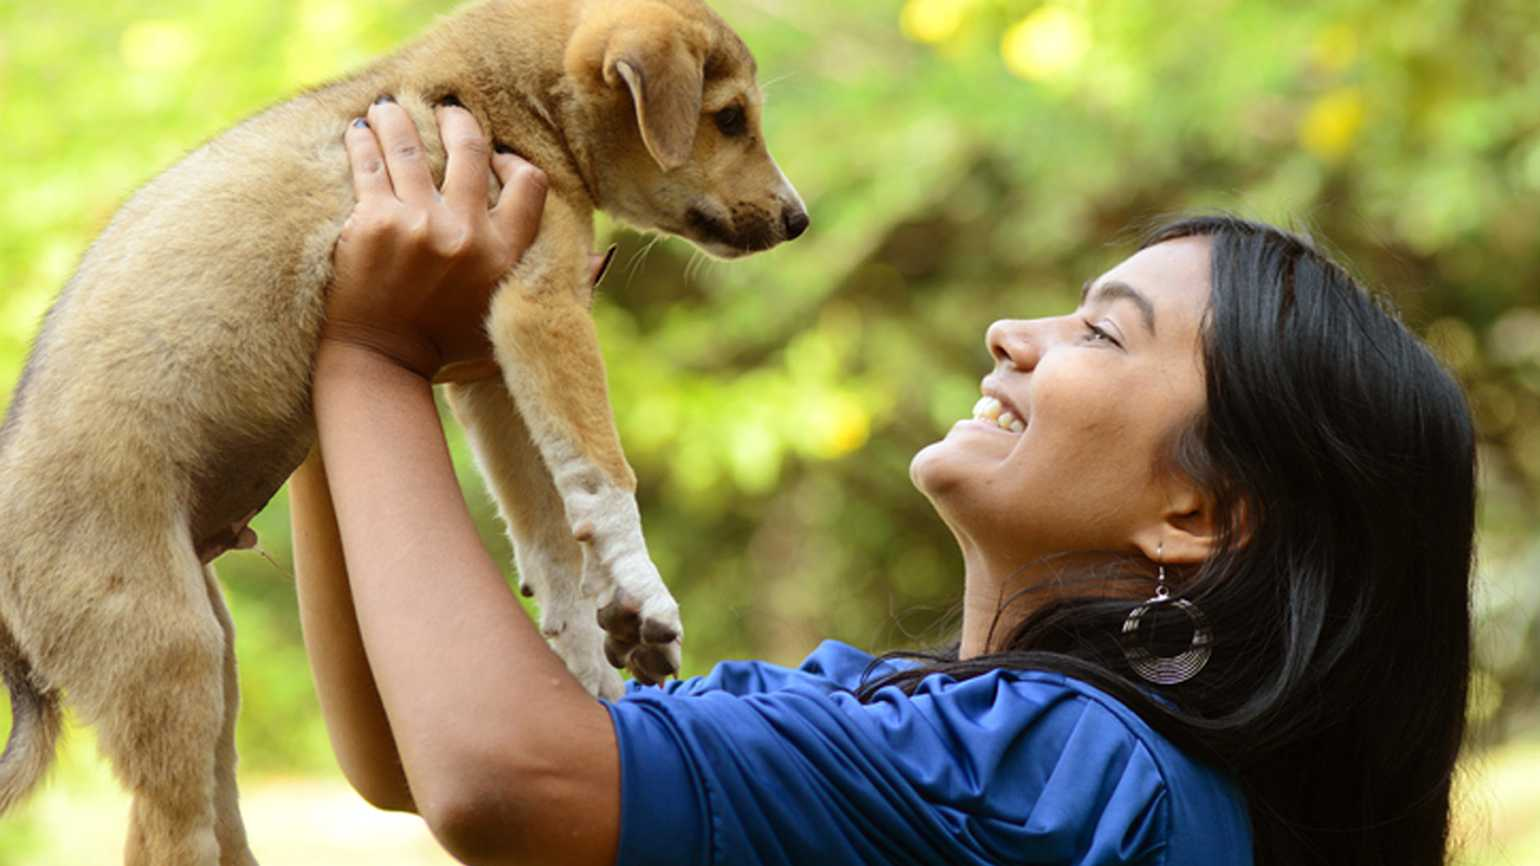 Woman lifts her newly adopted puppy in the air.